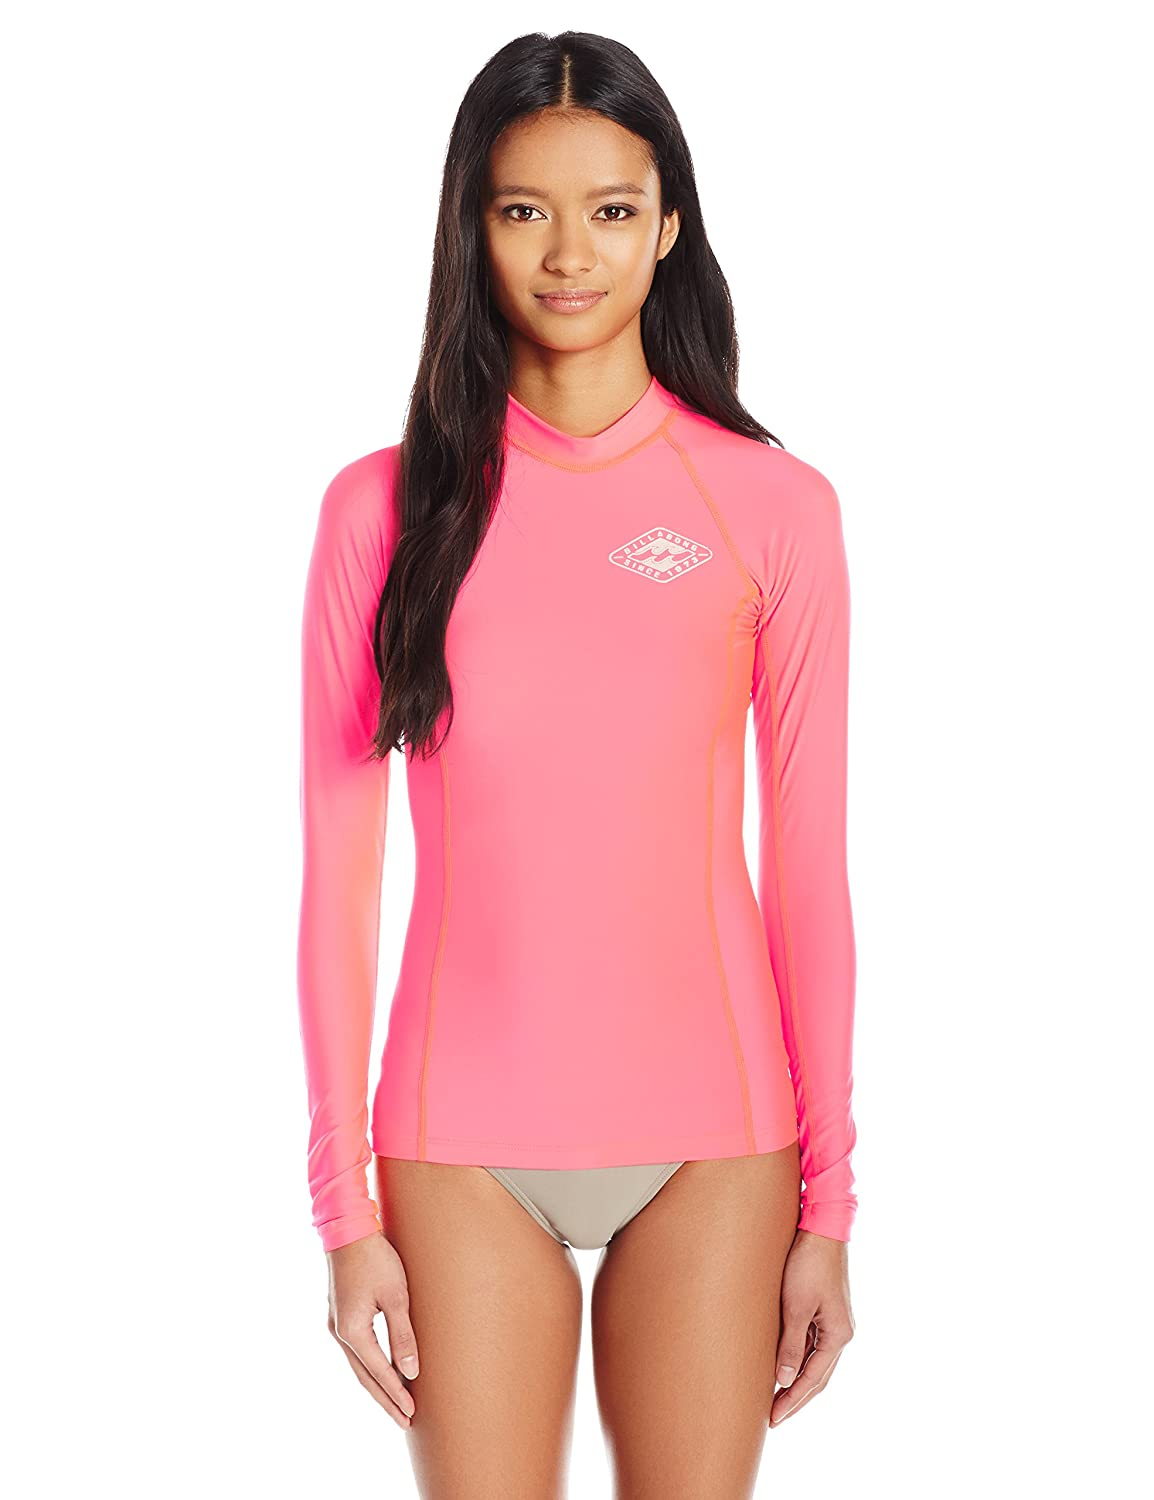 Billabong Women's Surf DayZ Pf Long Sleeve Rashguard Billabong Juniors Swimwear JWLYJSDL